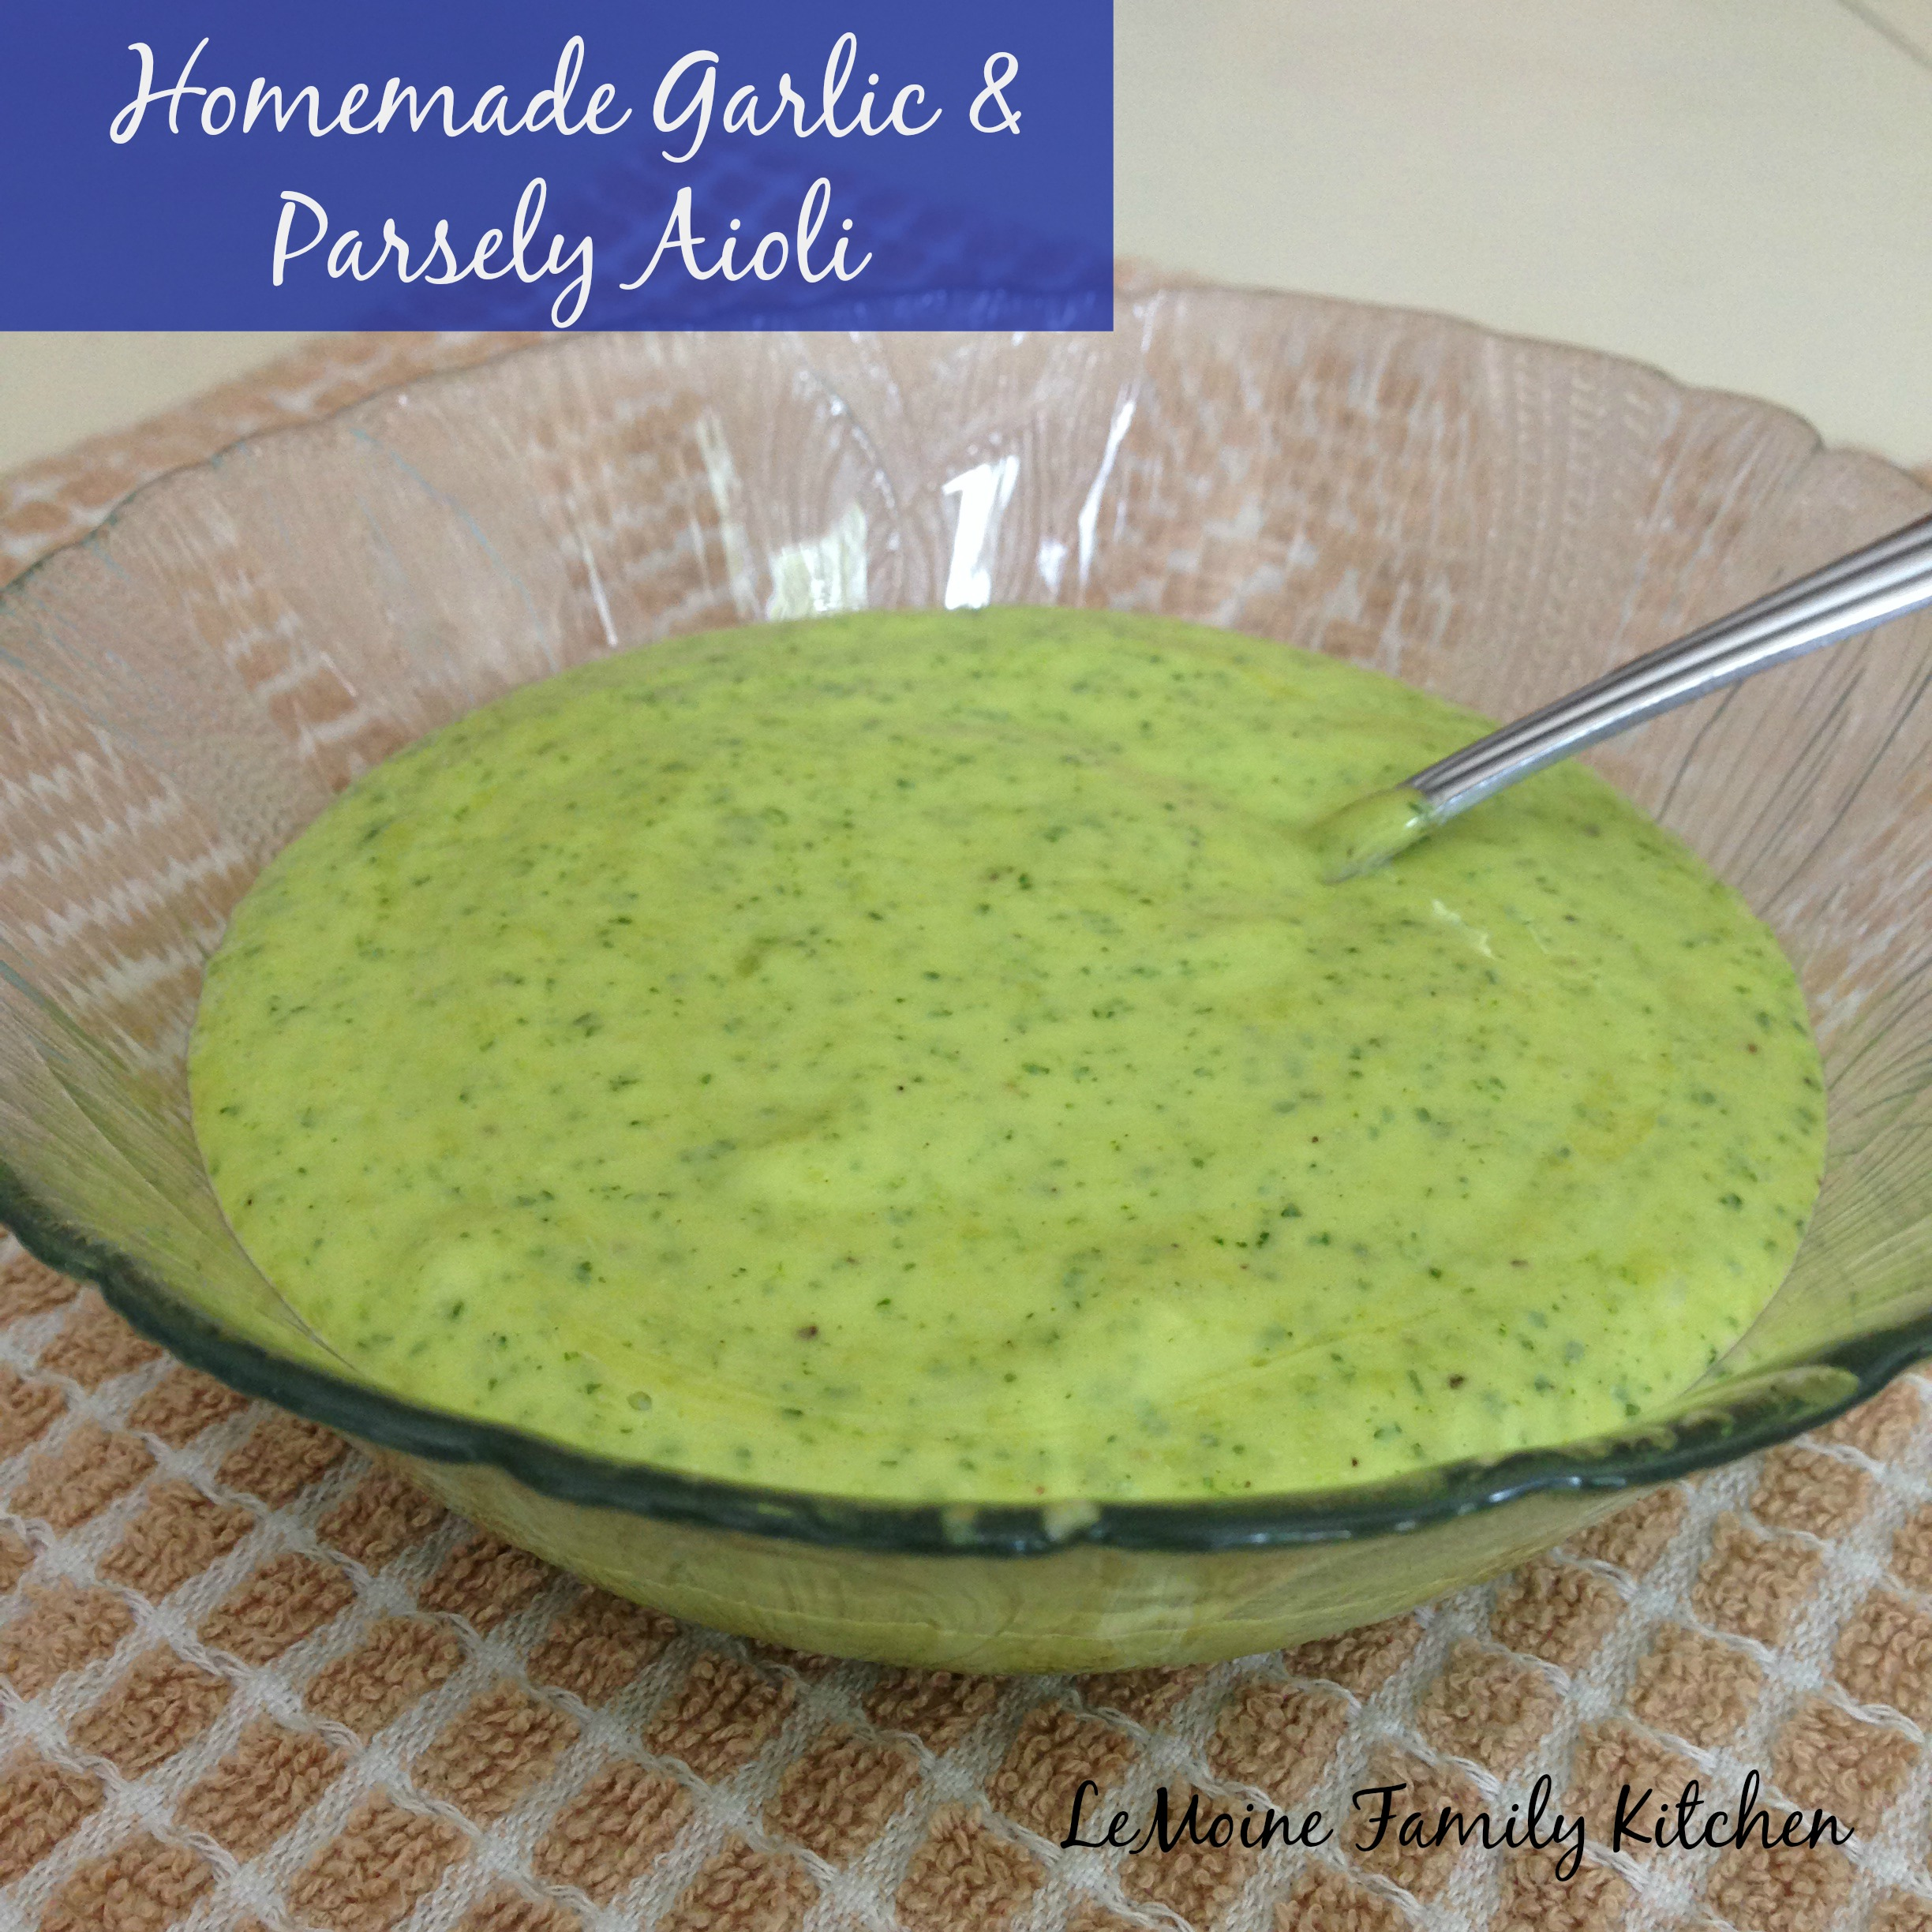 Homemade Garlic & Parsley Aioli